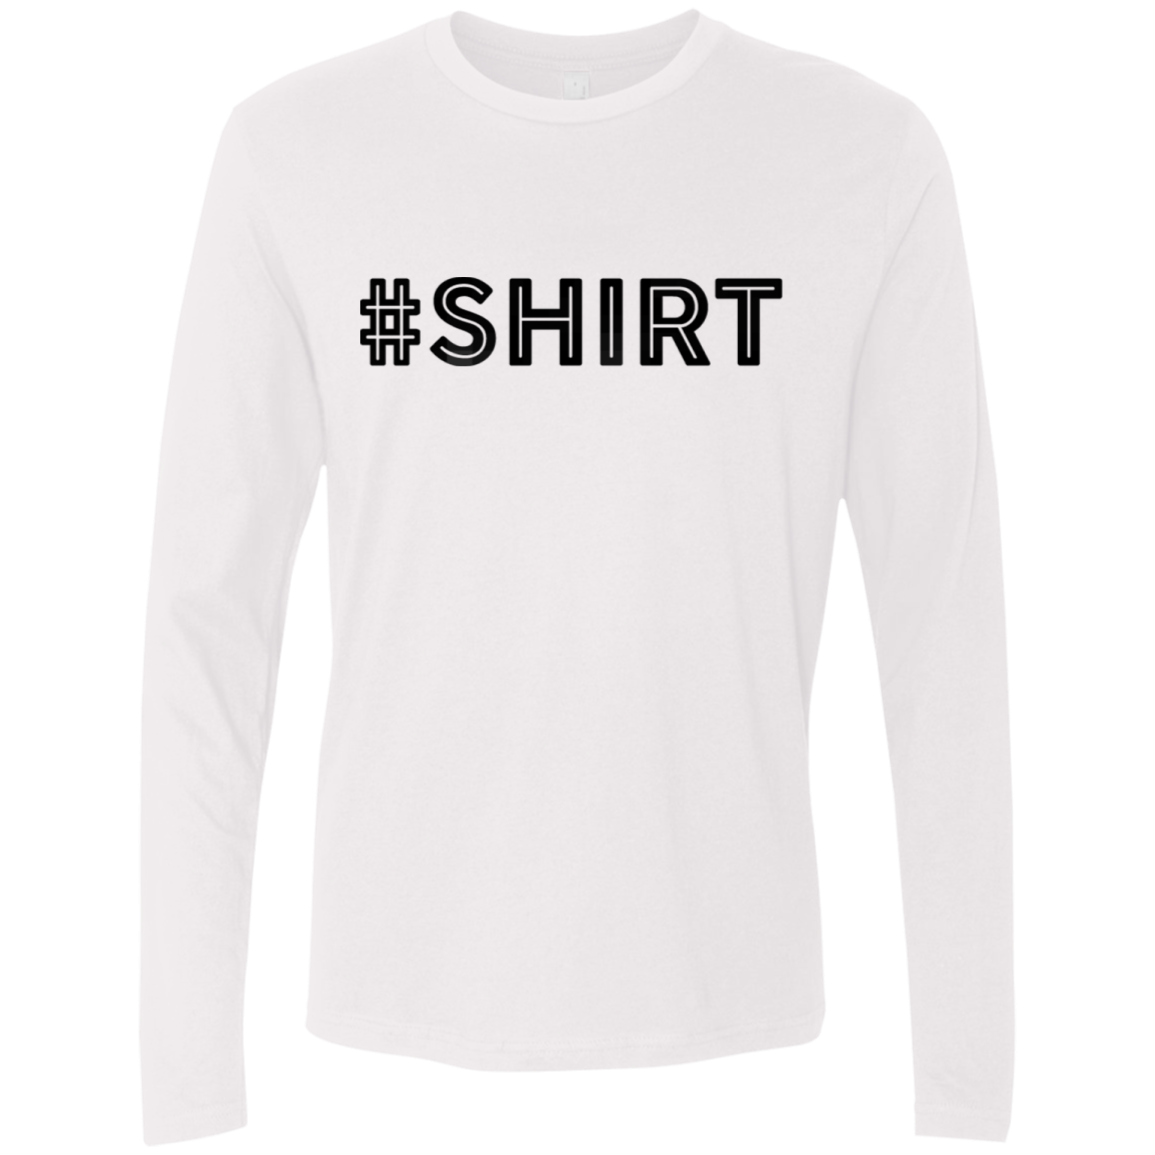 Hashtag Shirt Men's Long Sleeve Tee